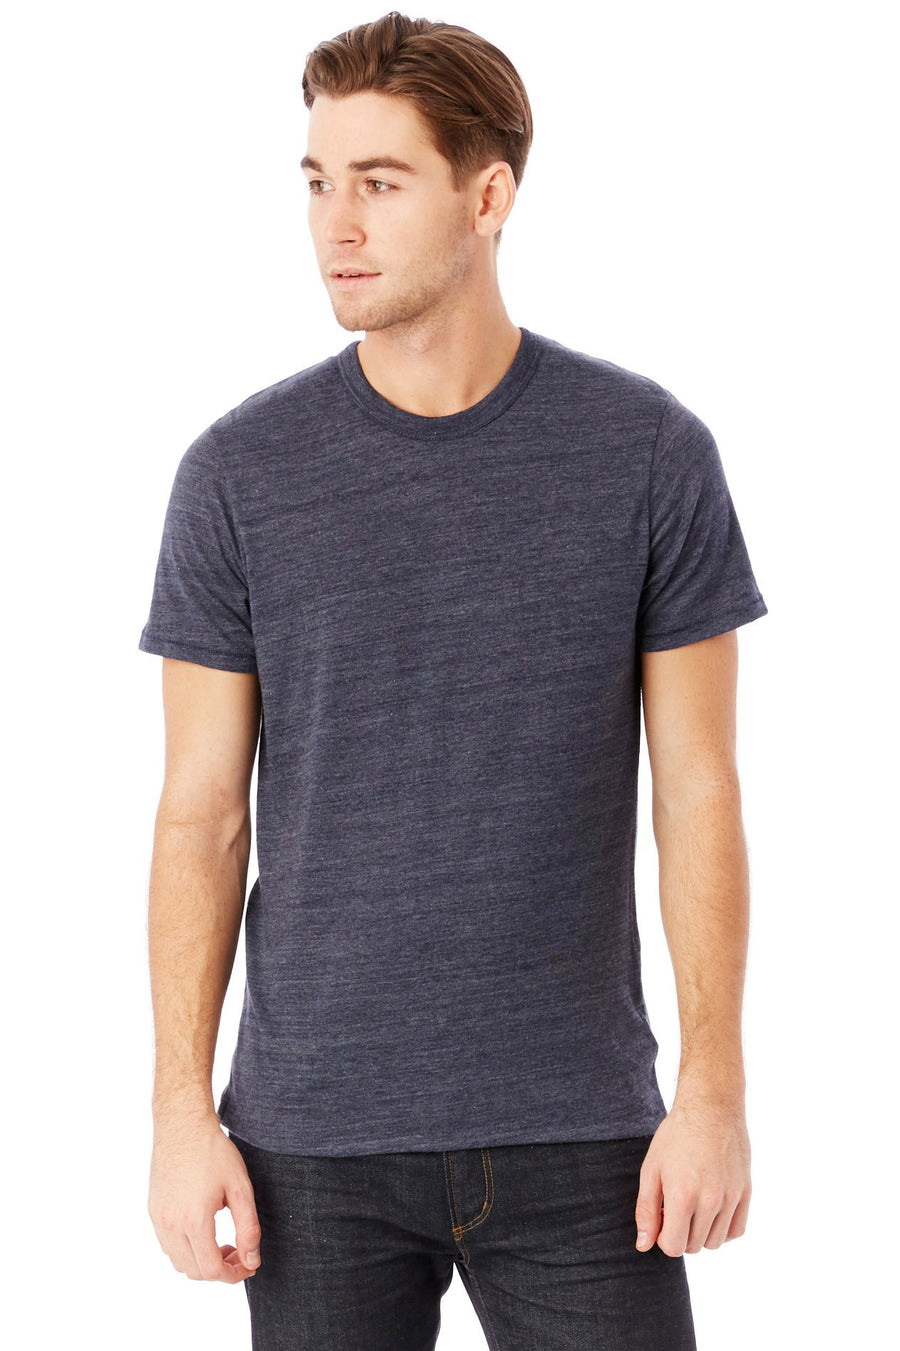 Eco Crew T-Shirt - Eco True Navy - Pavilion